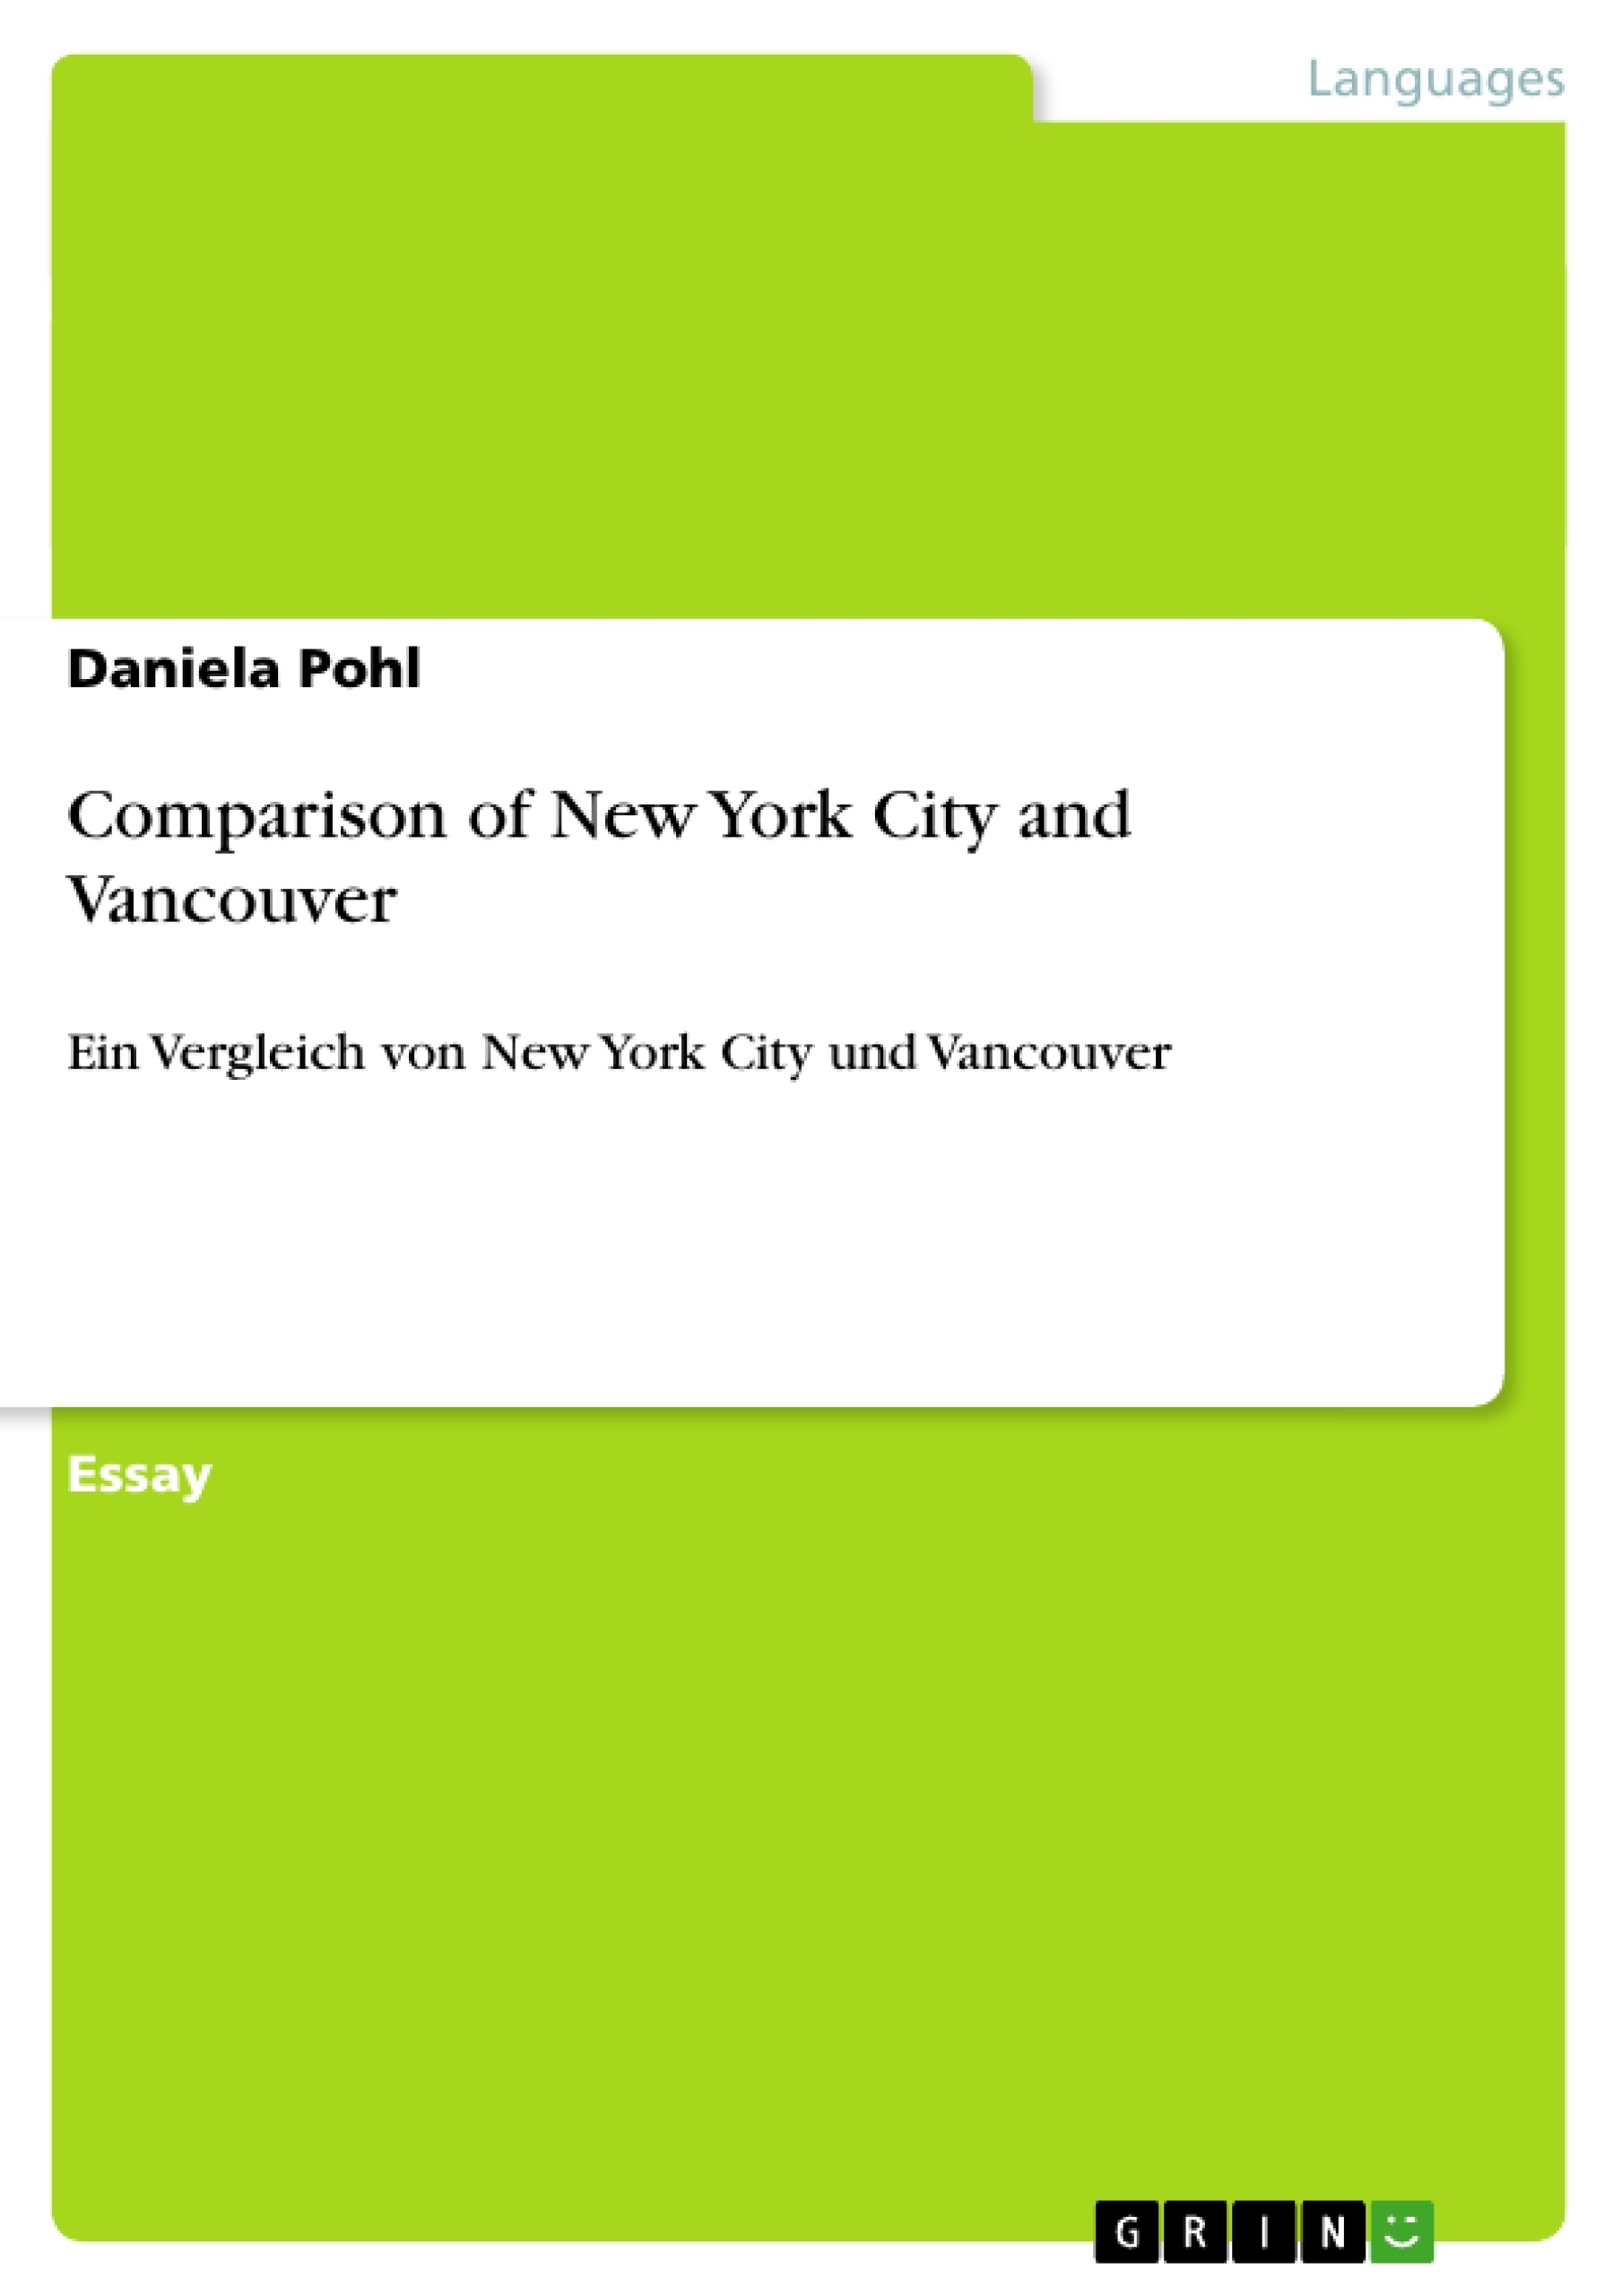 Title: Comparison of New York City and Vancouver